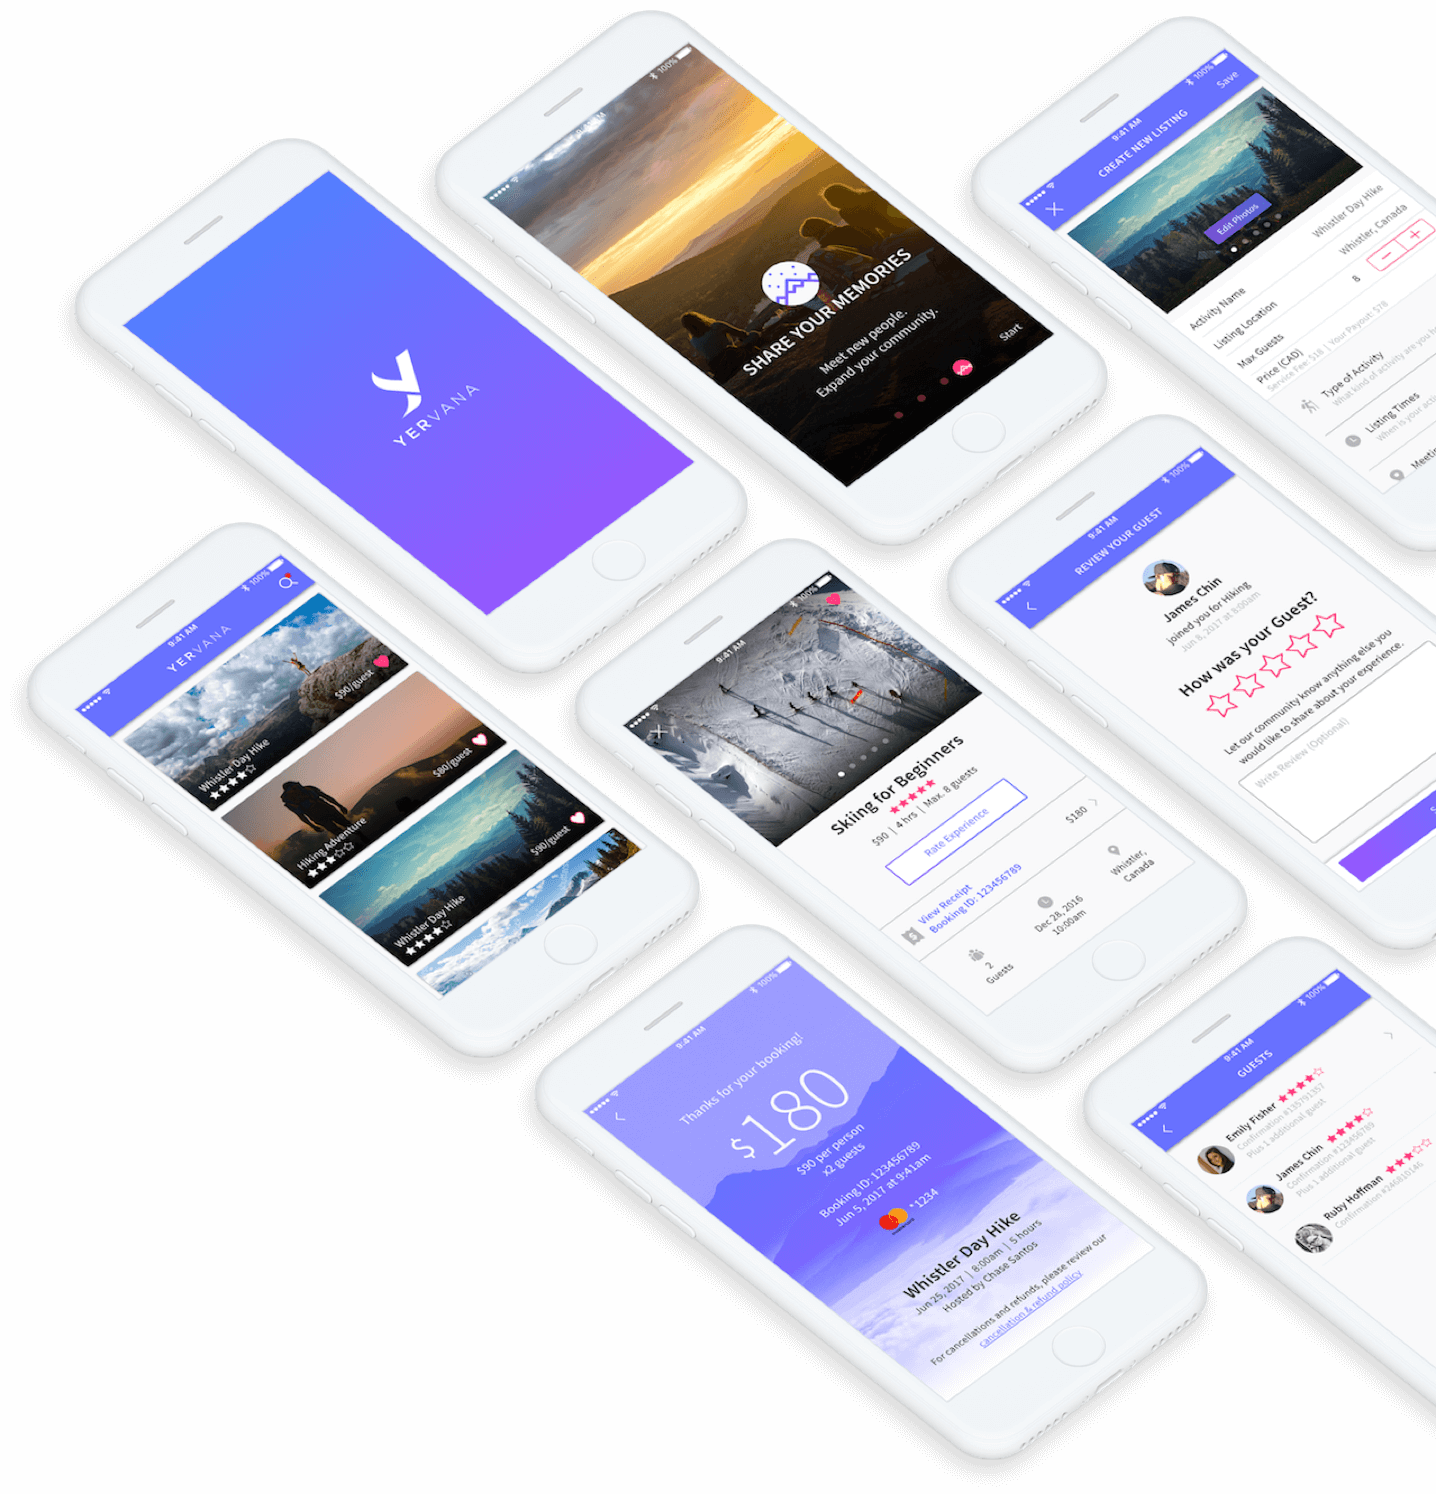 A collage of Yervana app UI screens on mobile devices